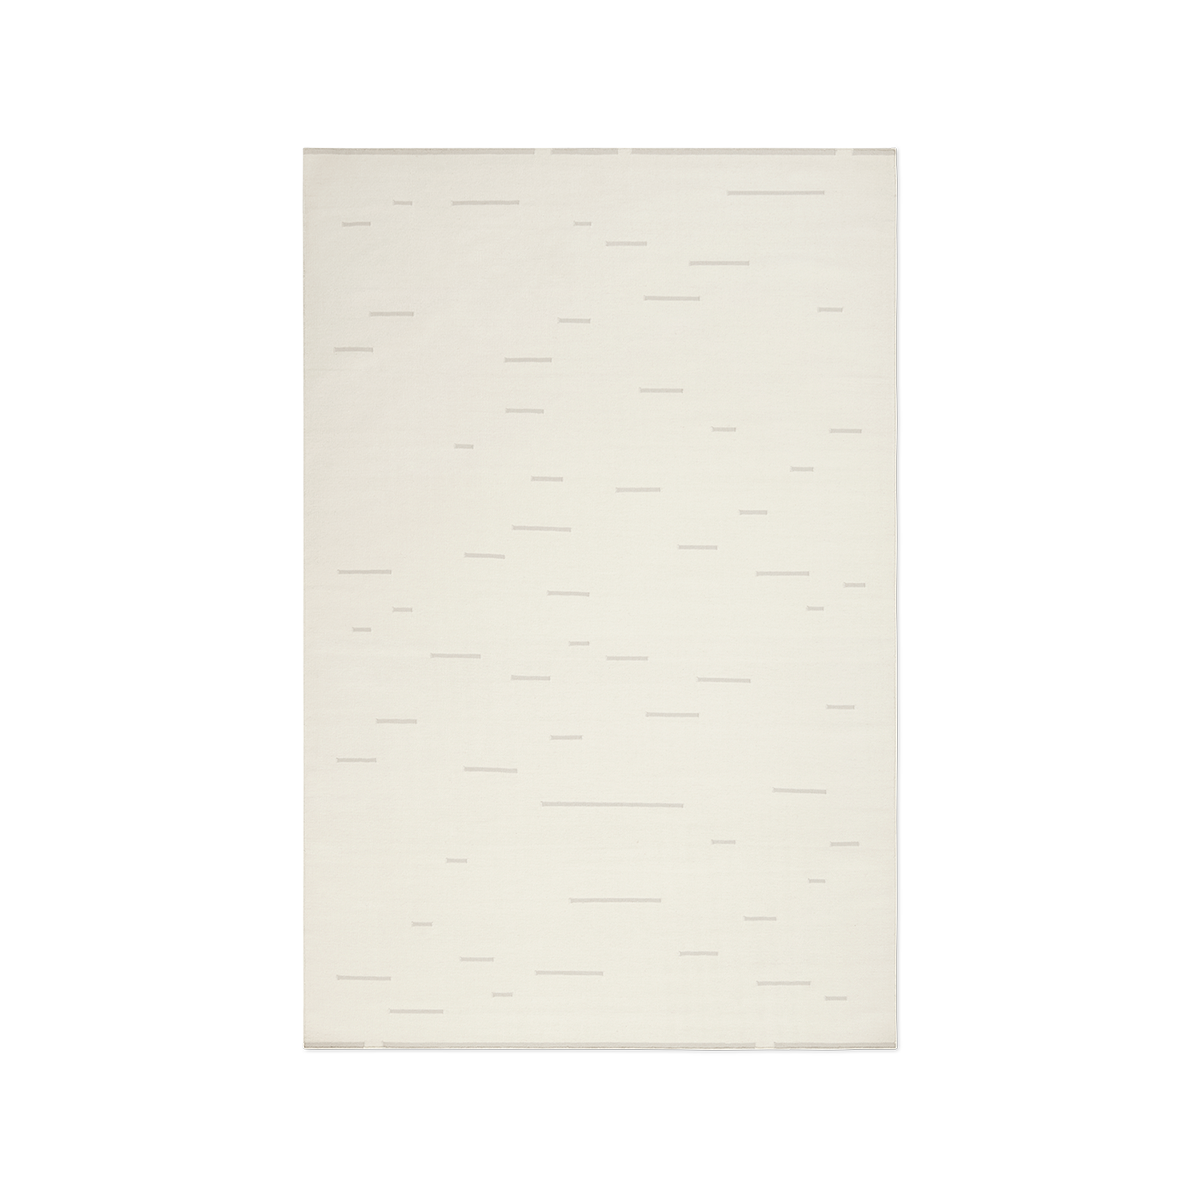 Product image of Rain Dusty White flat-weave rug.